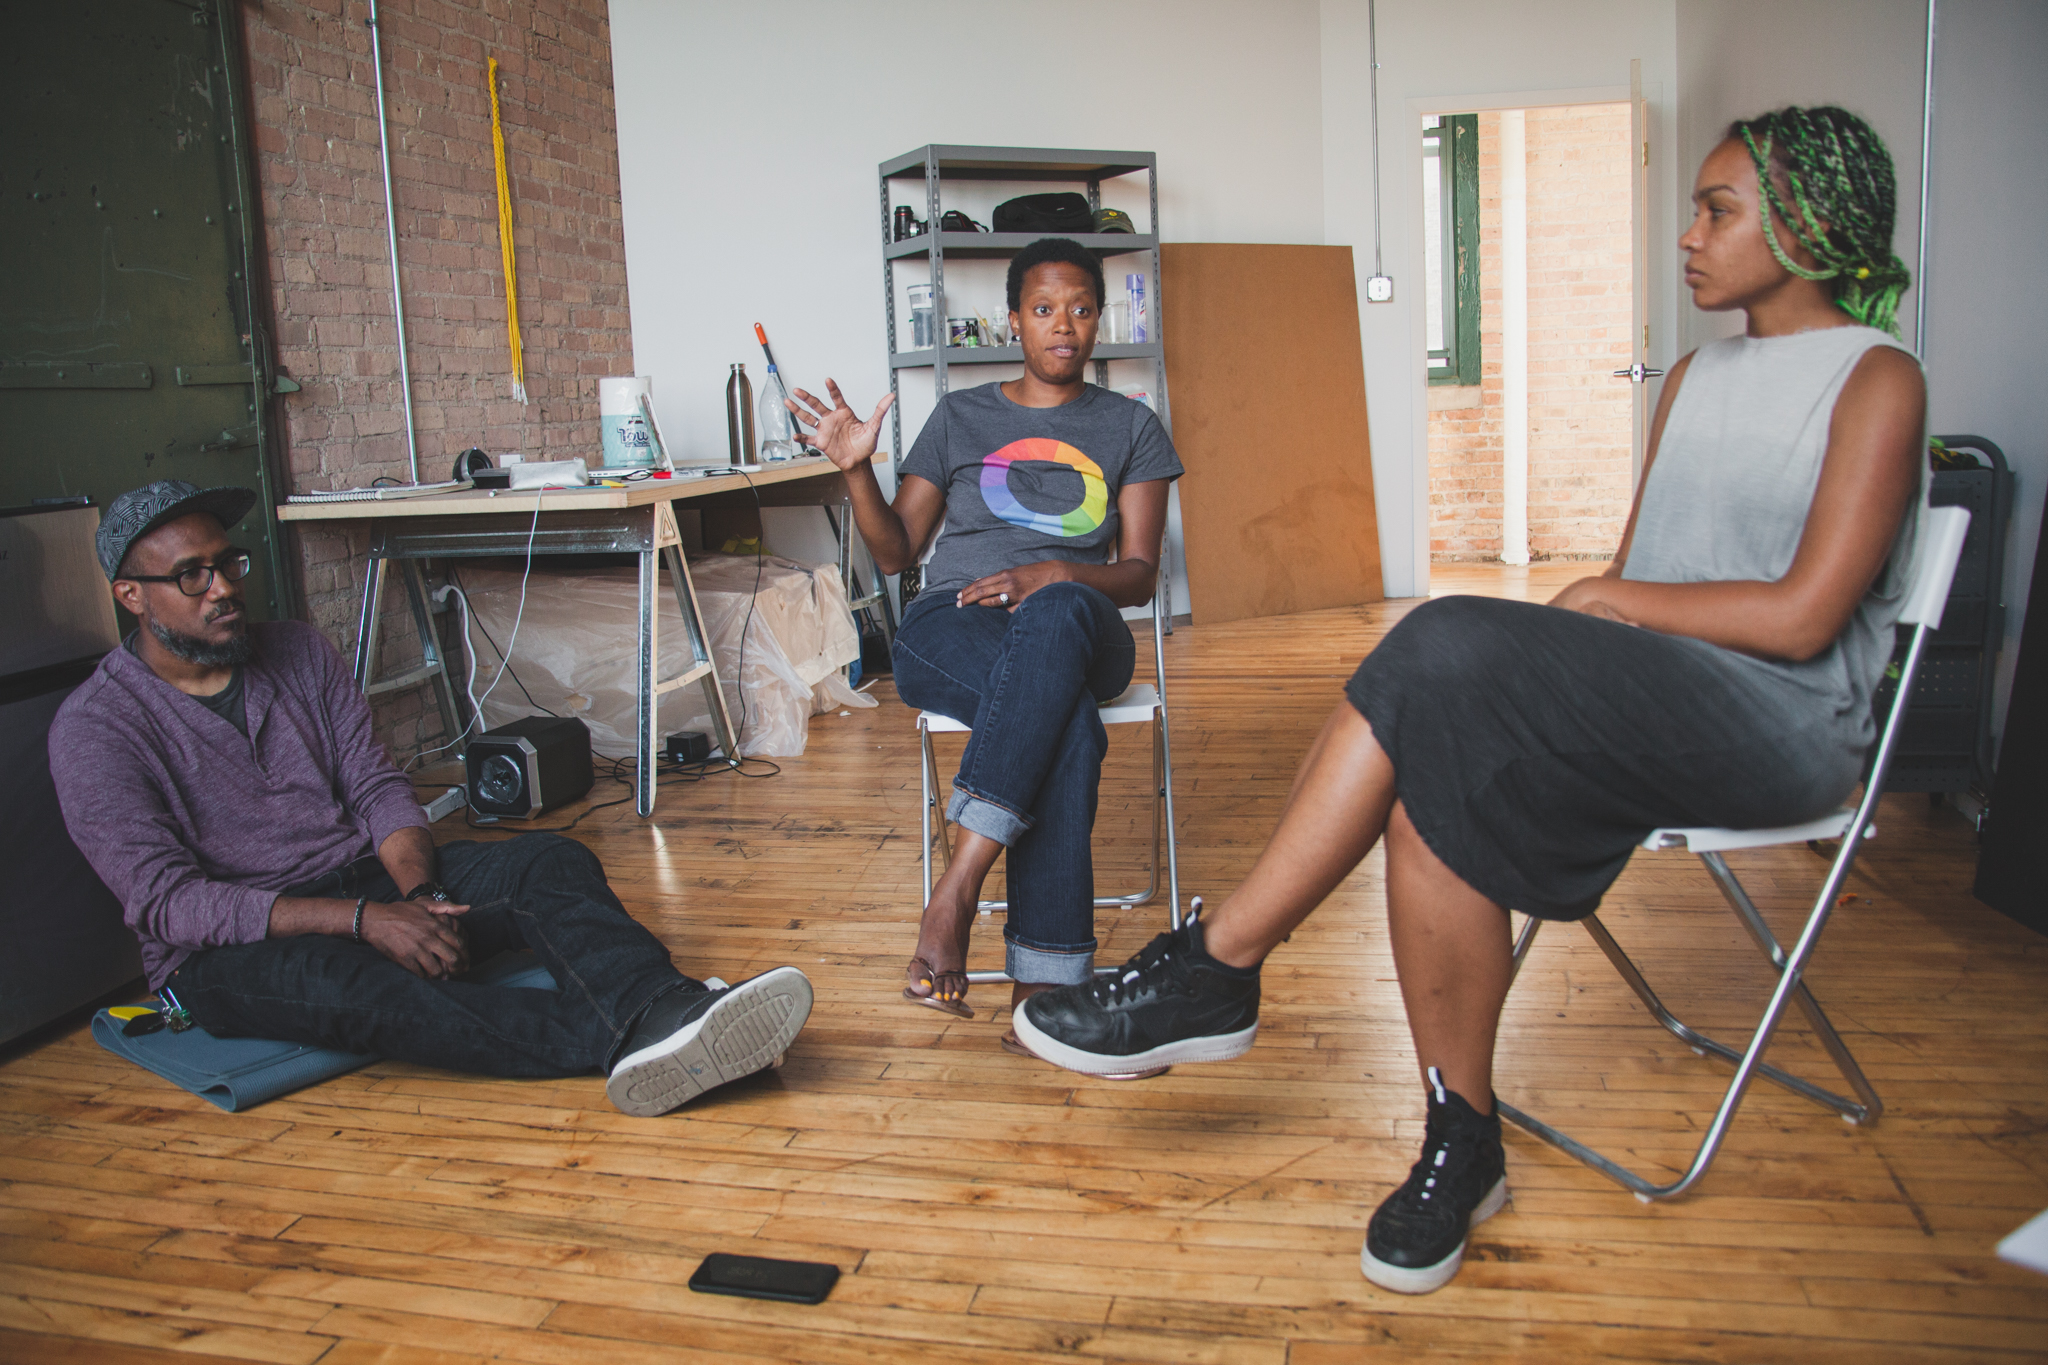 Image: Andres, Amanda, and Shani in a studio at Bridgeport Art Center, 2018. The image shows Andres sitting on the ground, Amanda and Shani sitting in chairs near him and Amanda is speaking as the other two listen. Photo by Ally Almore.